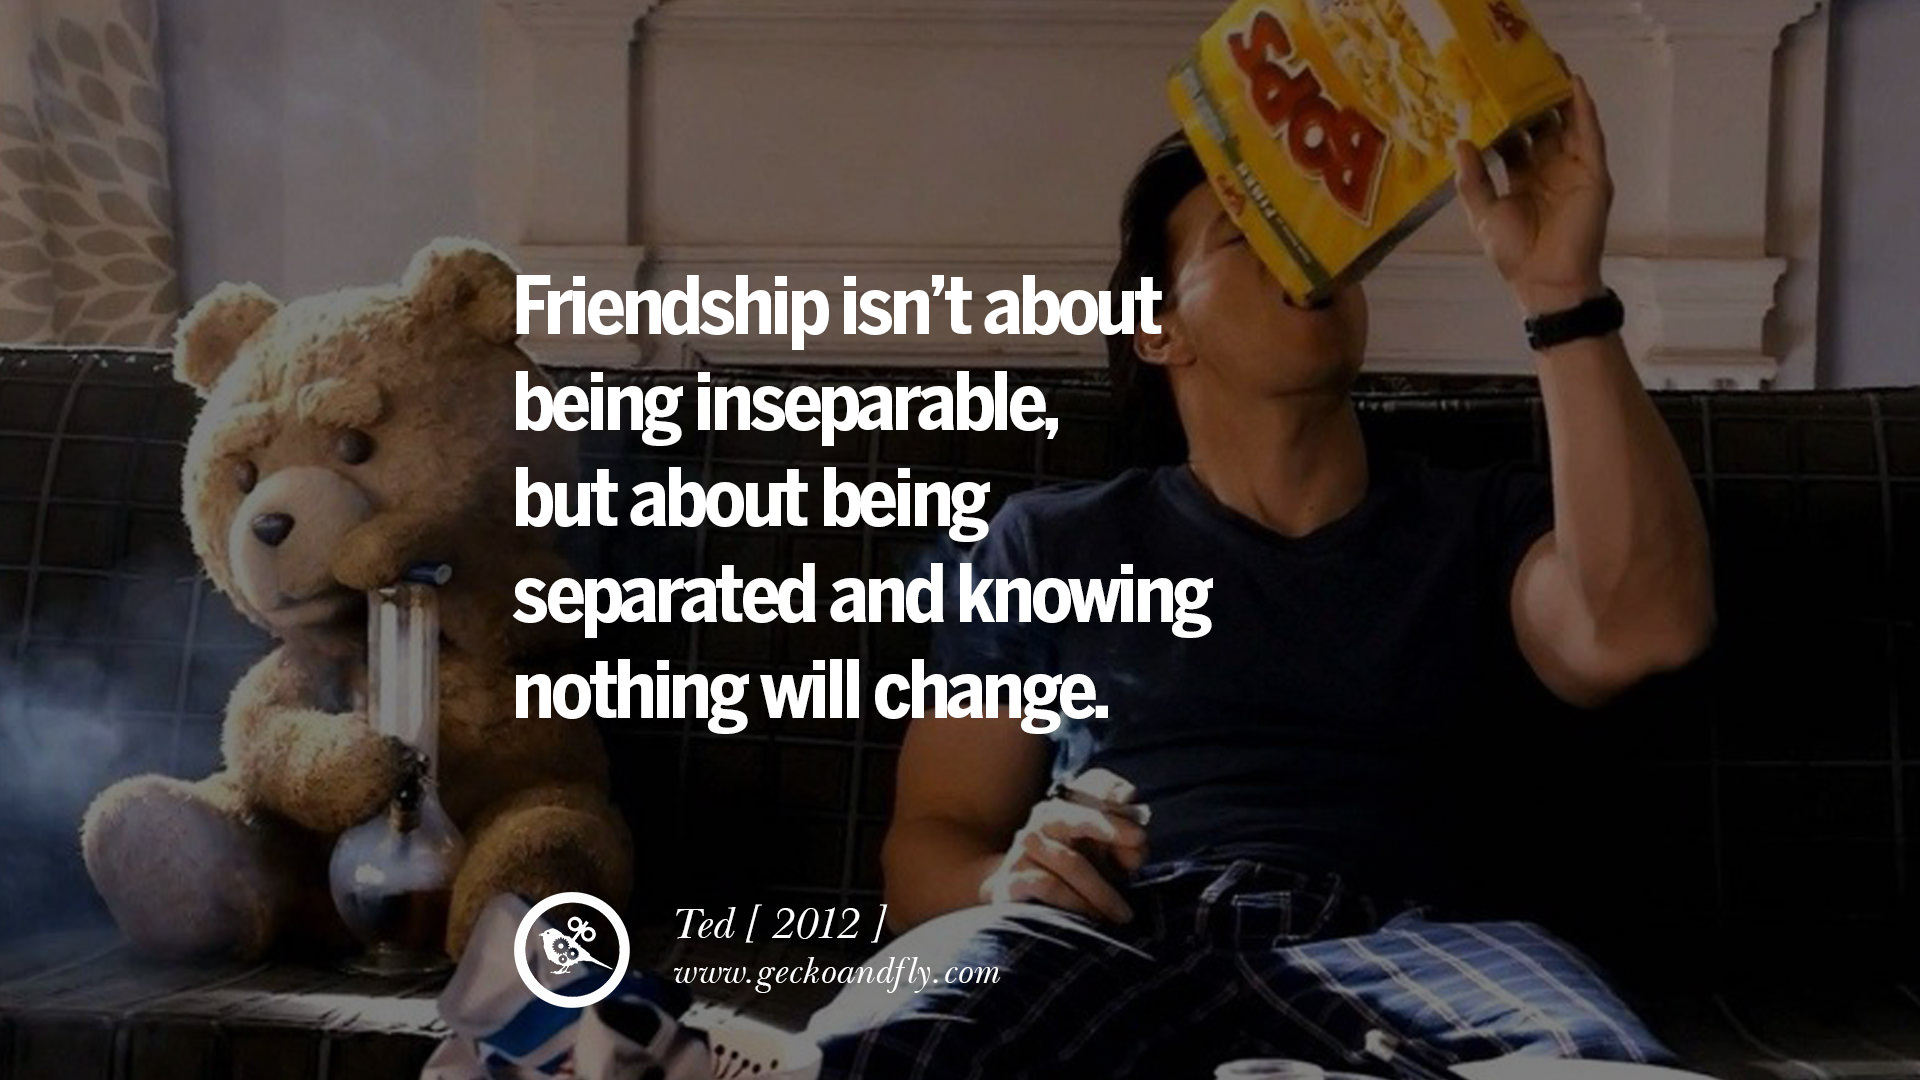 A Quote About Friendship 20 Famous Movie Quotes On Love Life Relationship Friends And